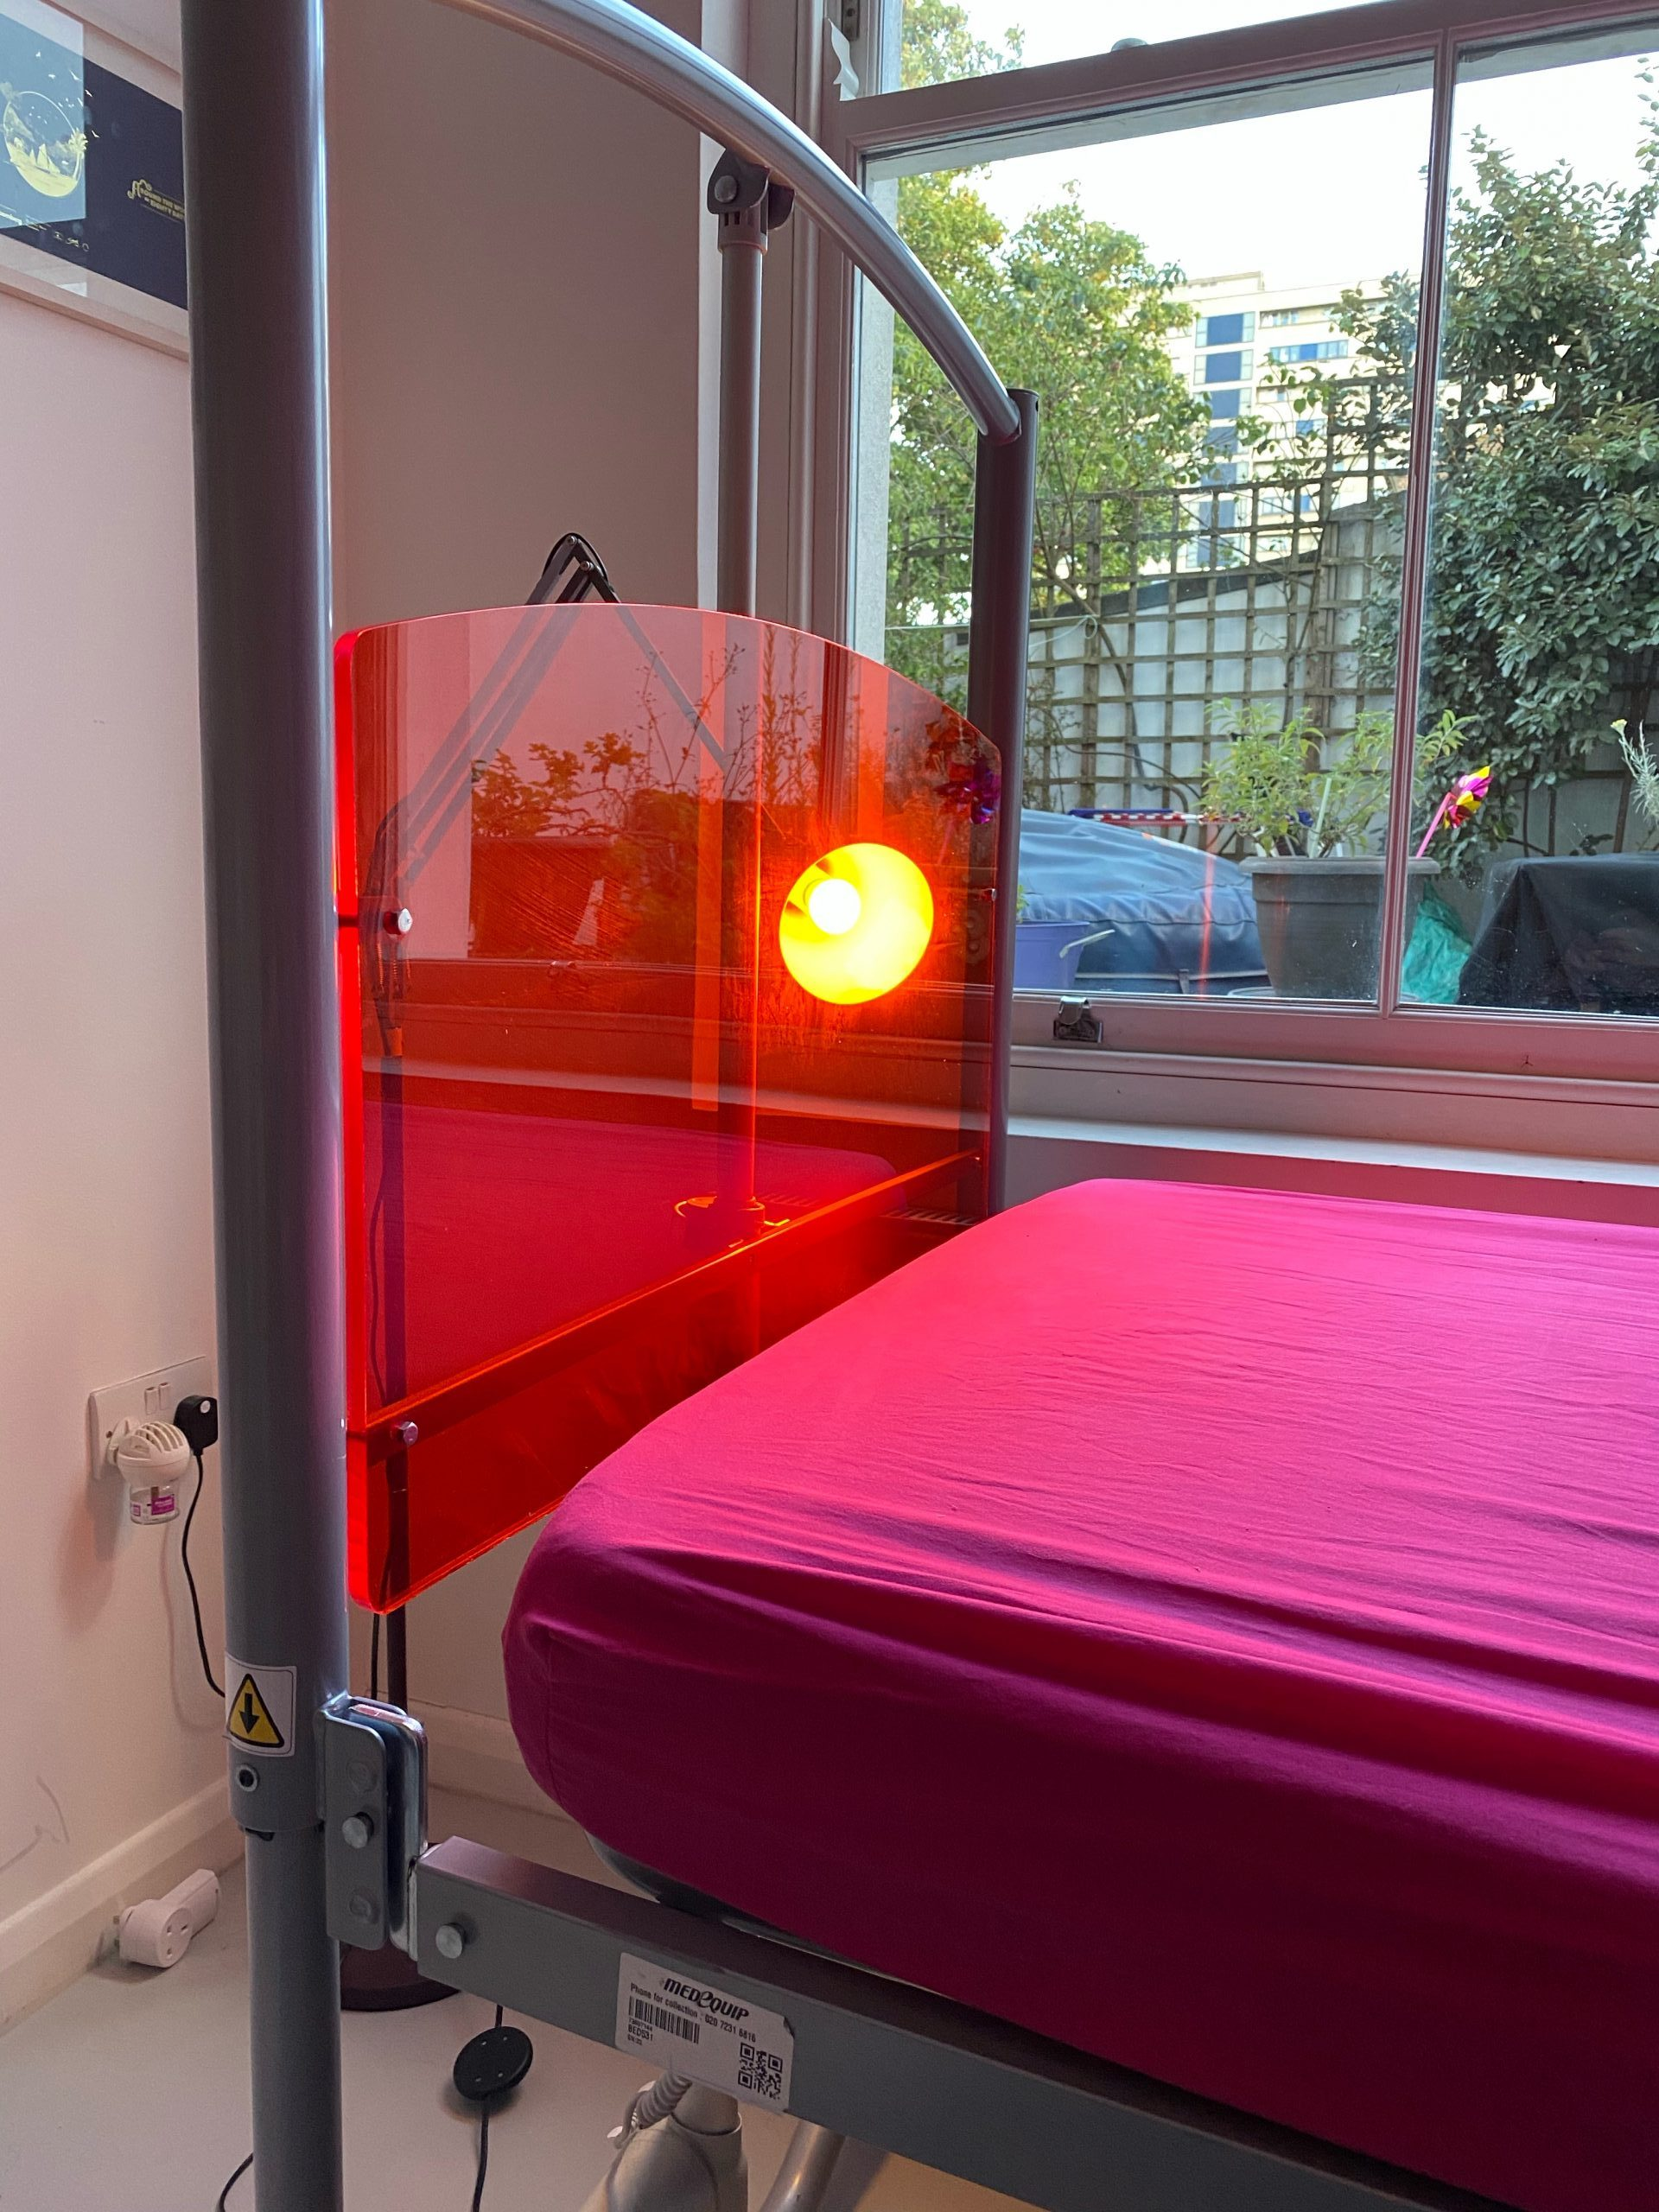 Photograph of the end of Touretteshero's new bed head. It is made of coloured amber perspex and a light is shining through it. There is a fuchsia pink sheet on the bed.